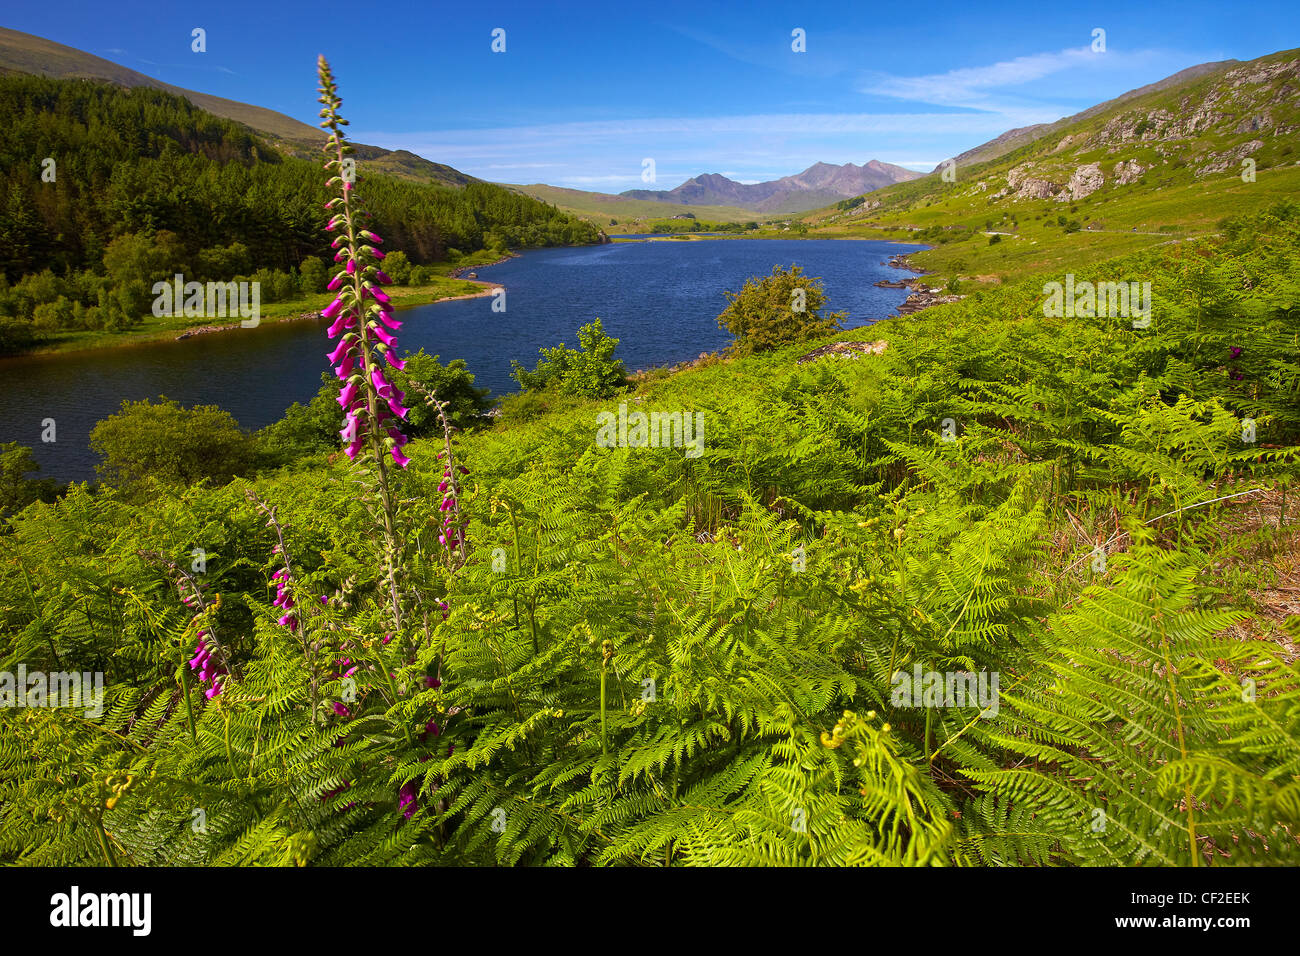 View over Llyn Mymbyr towards Snowdon, the highest mountain in Wales, in the distance. - Stock Image